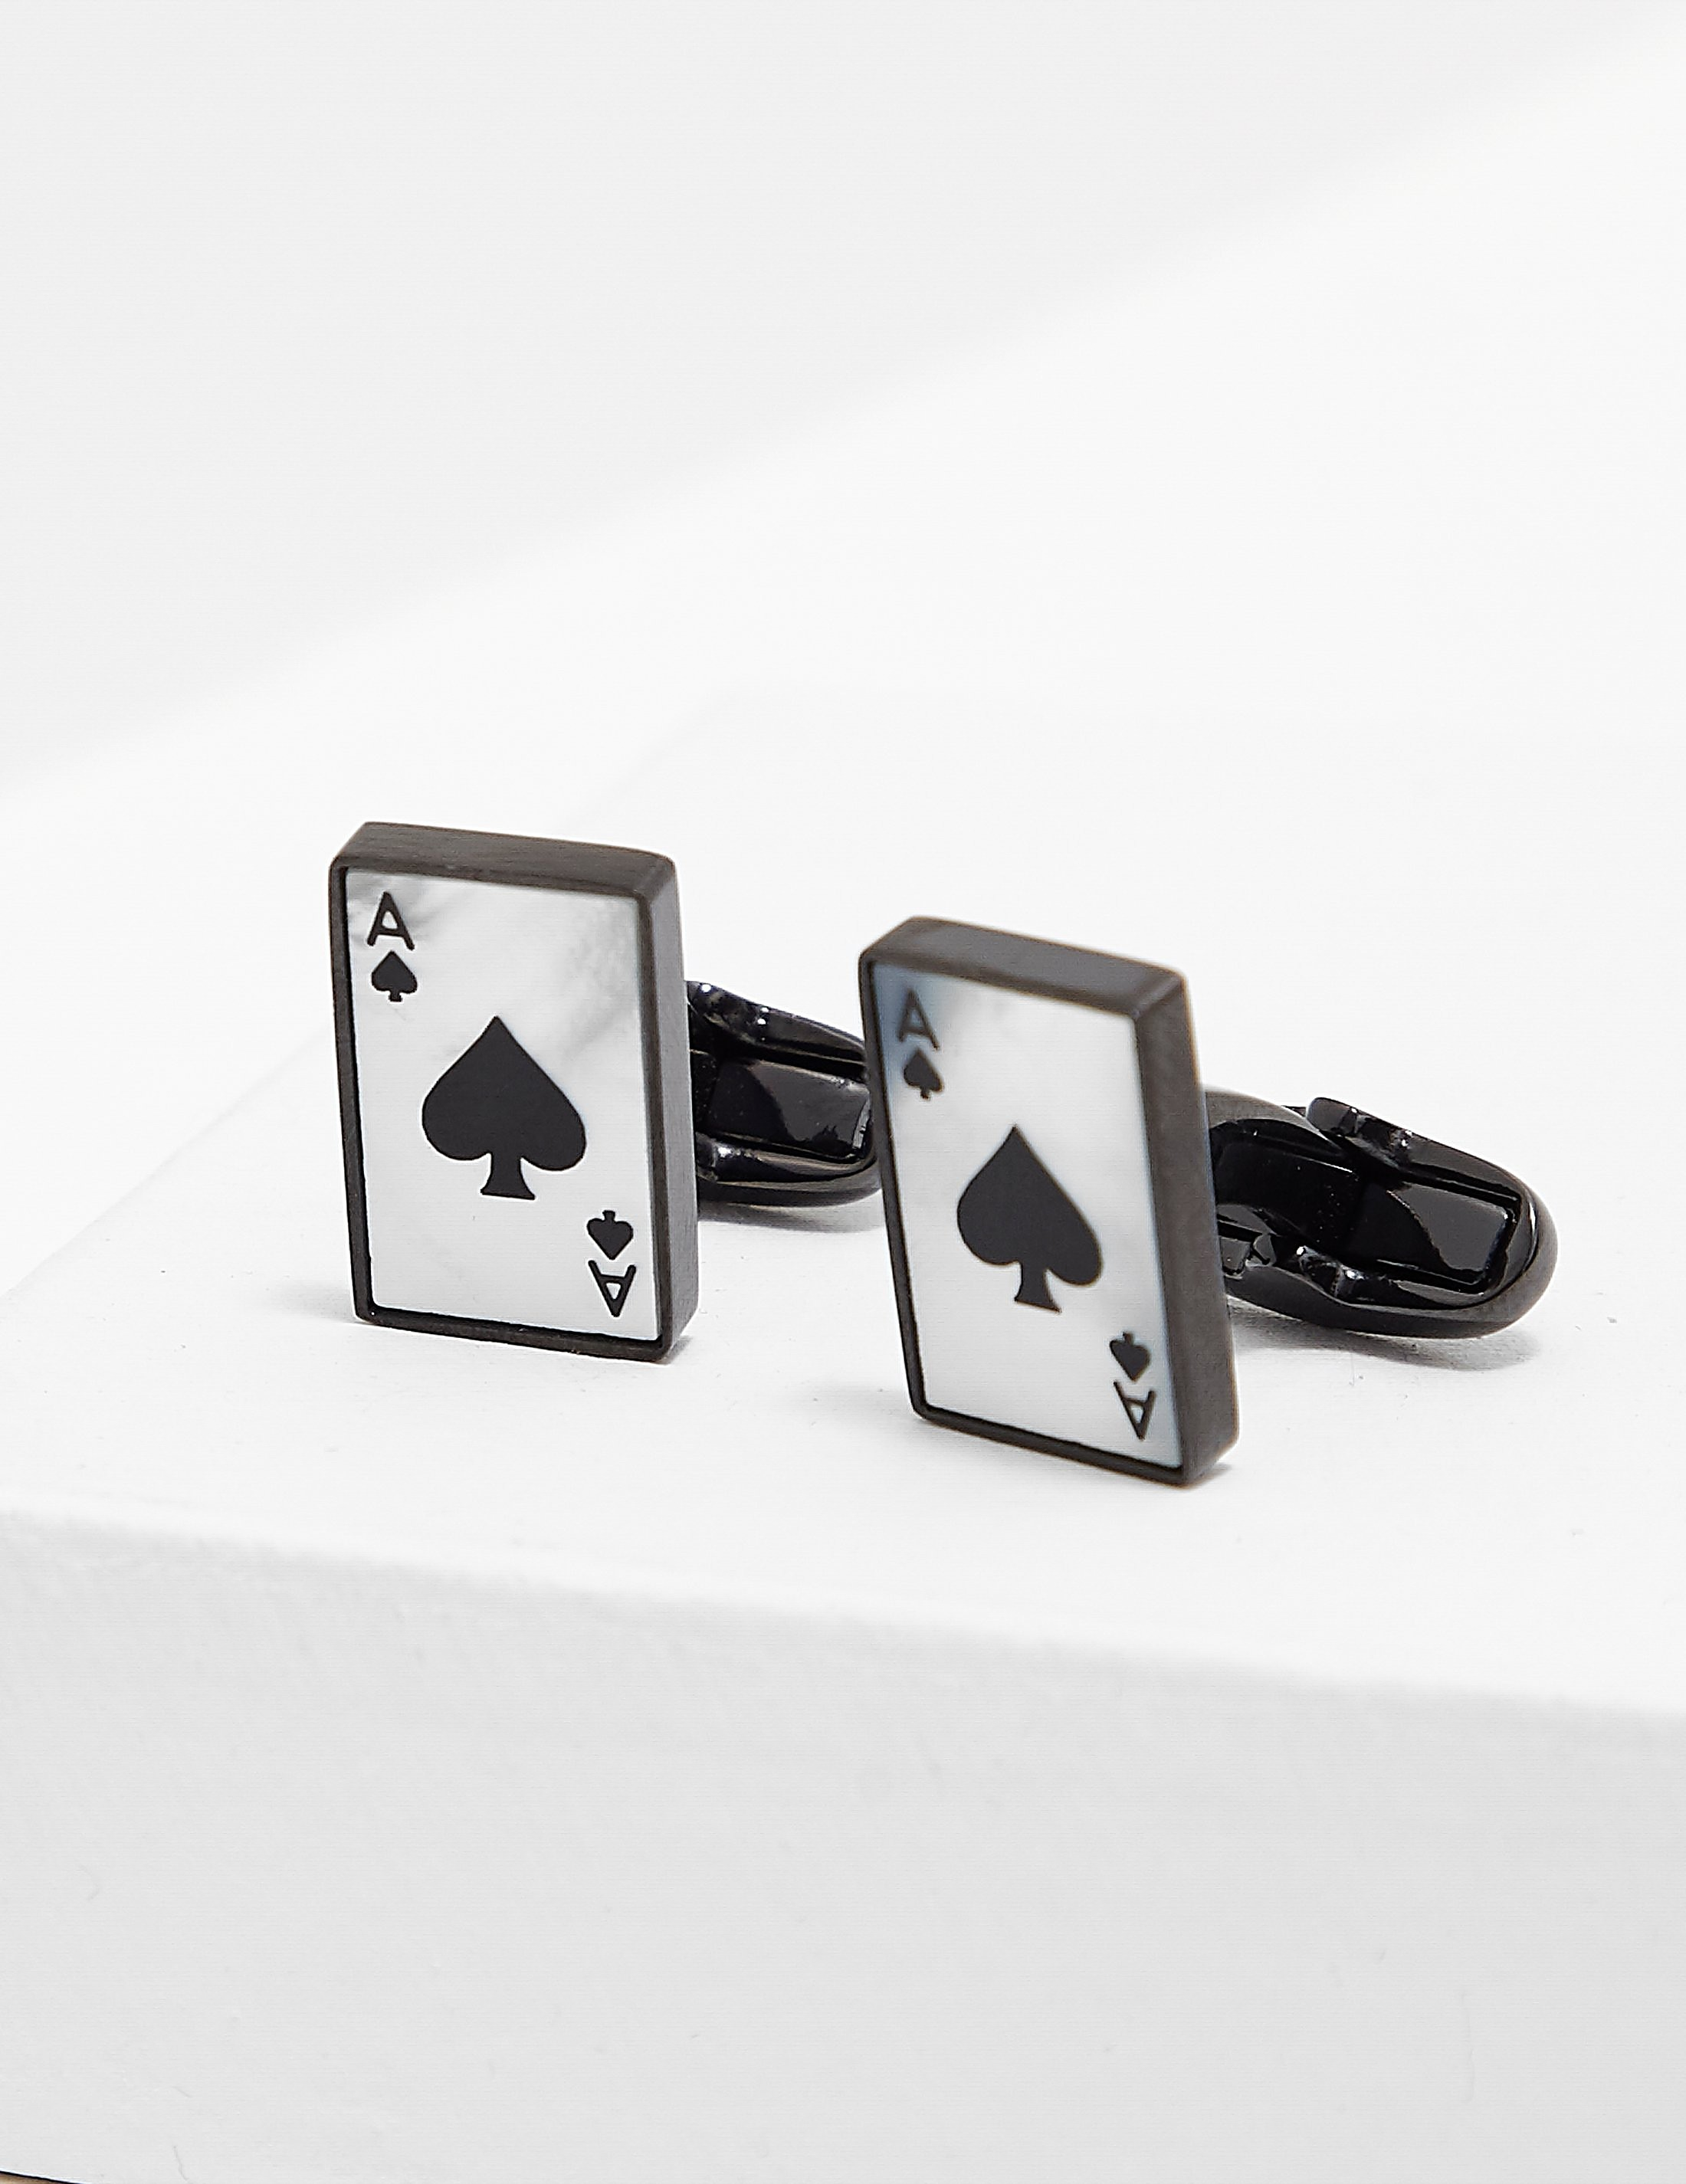 Paul Smith Ace of Spades Cufflinks